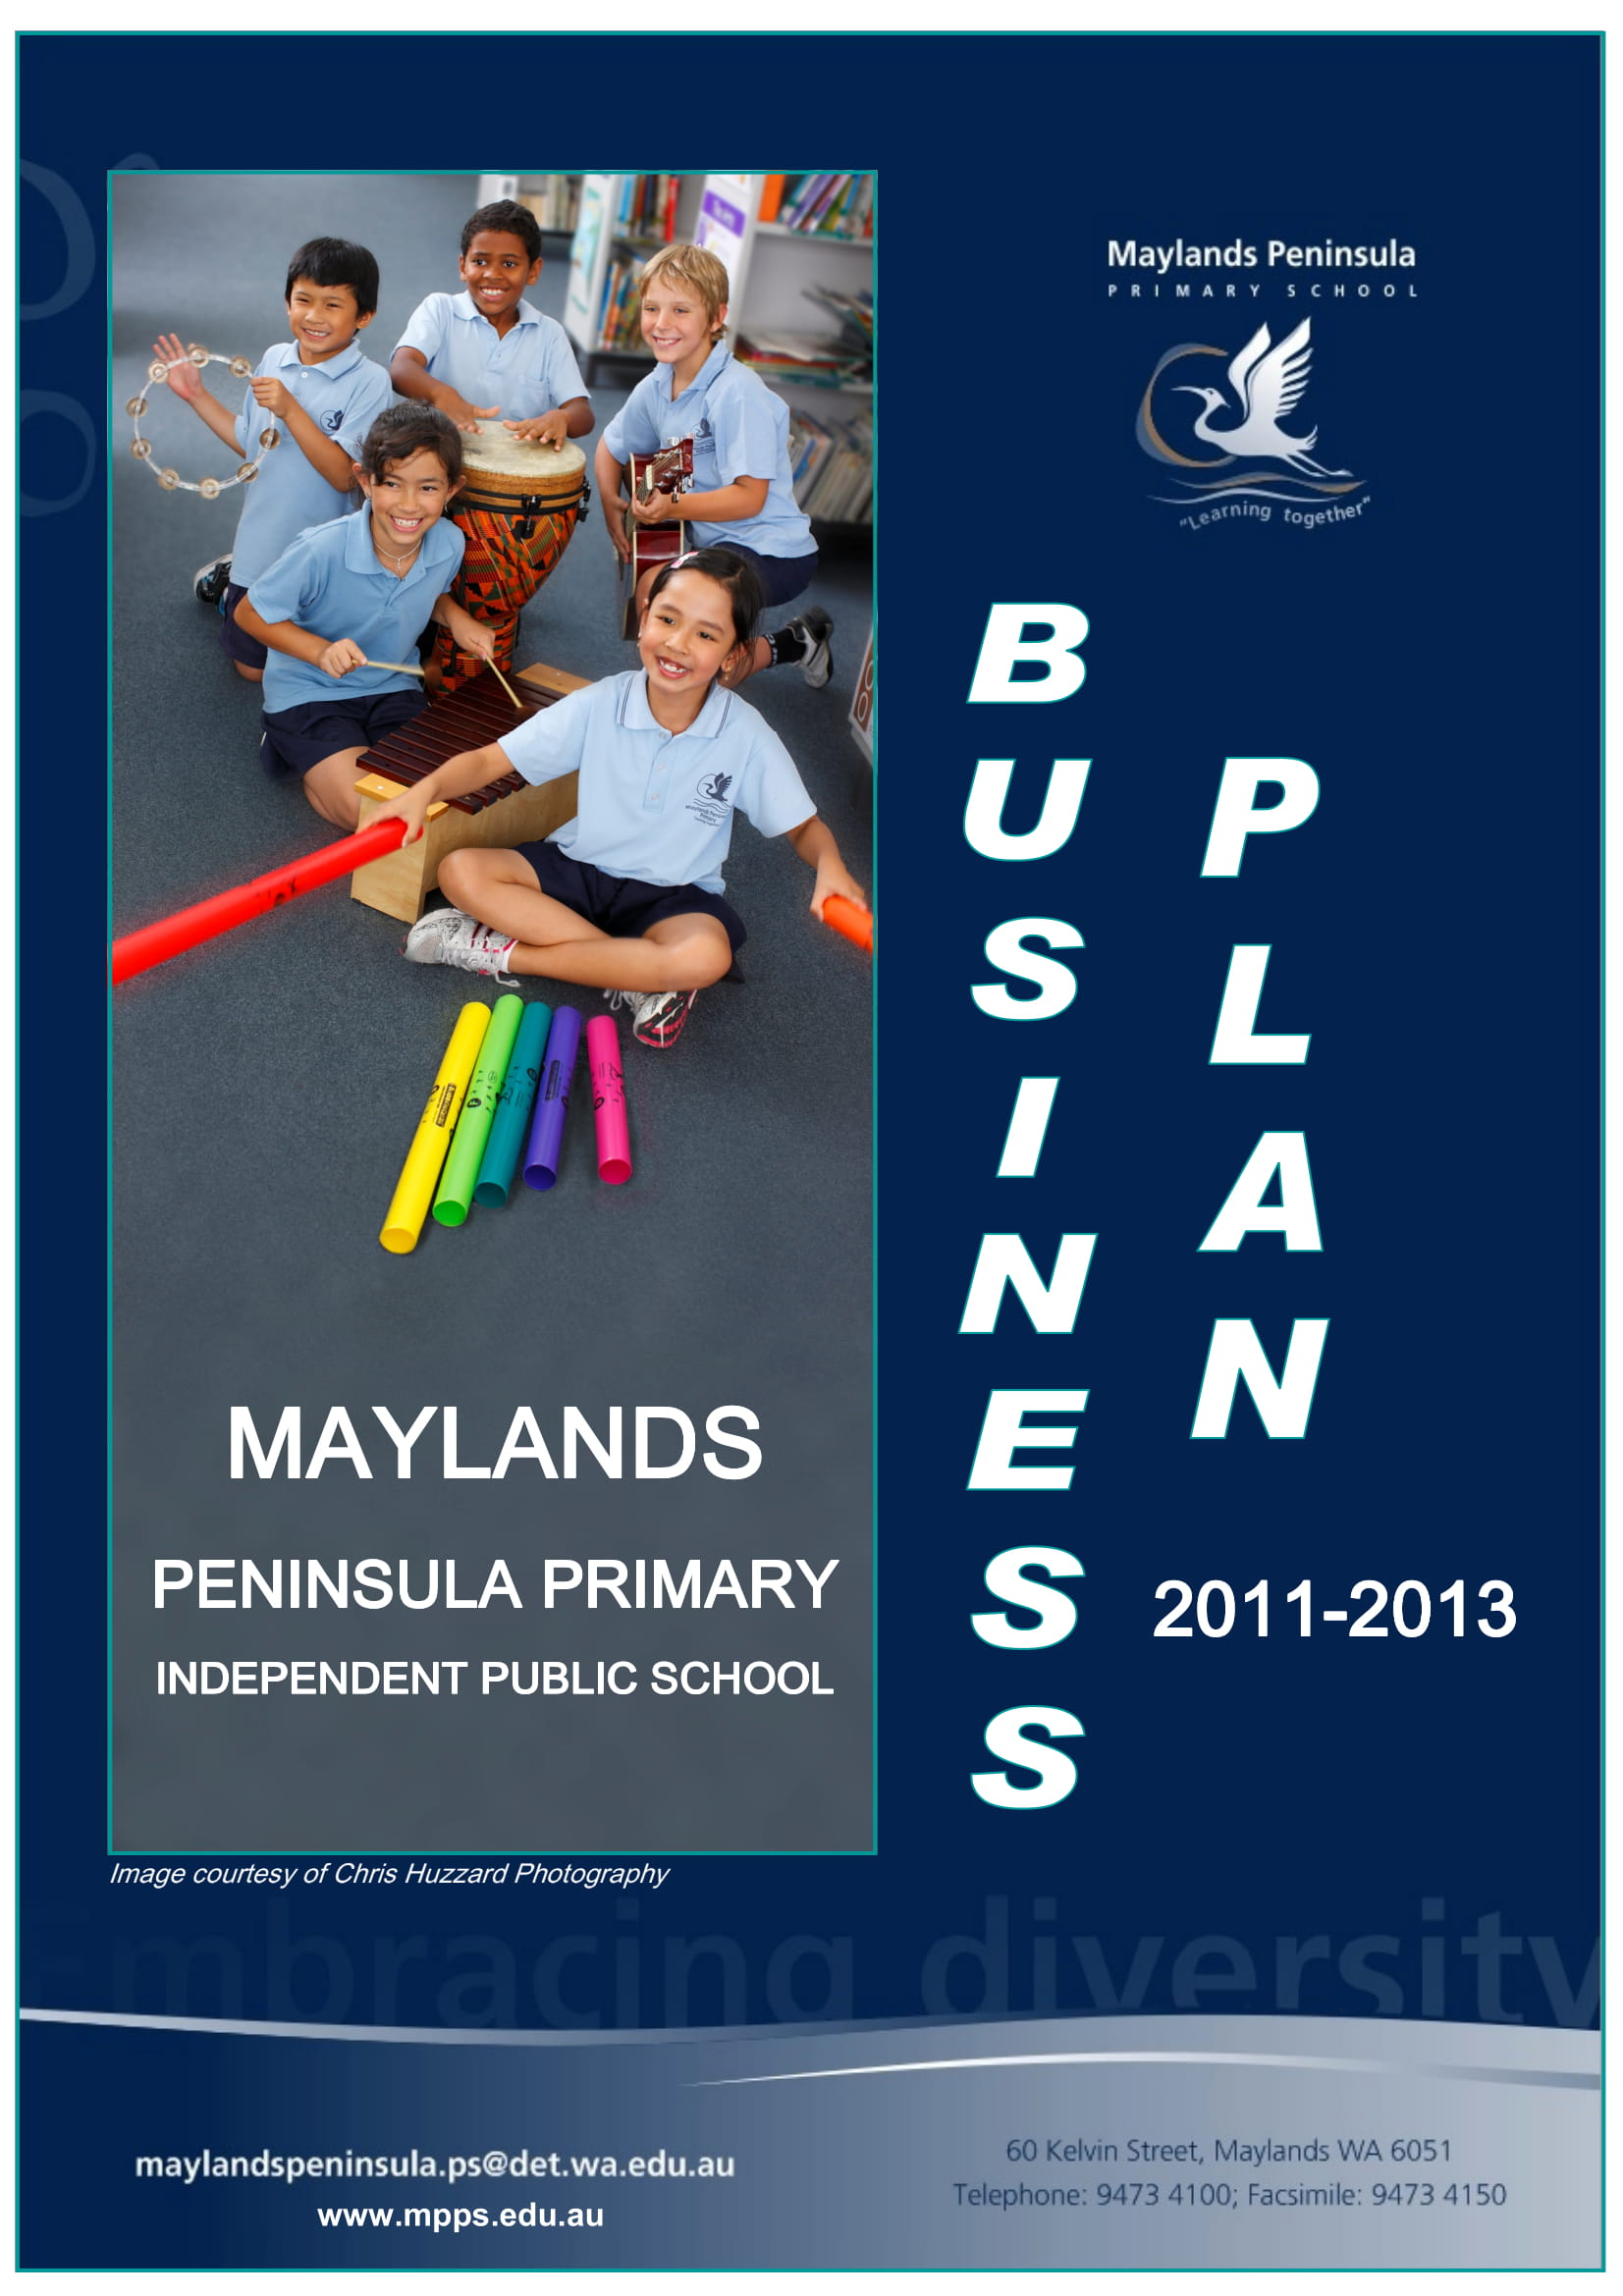 primary independent public school operational and business plan example 01